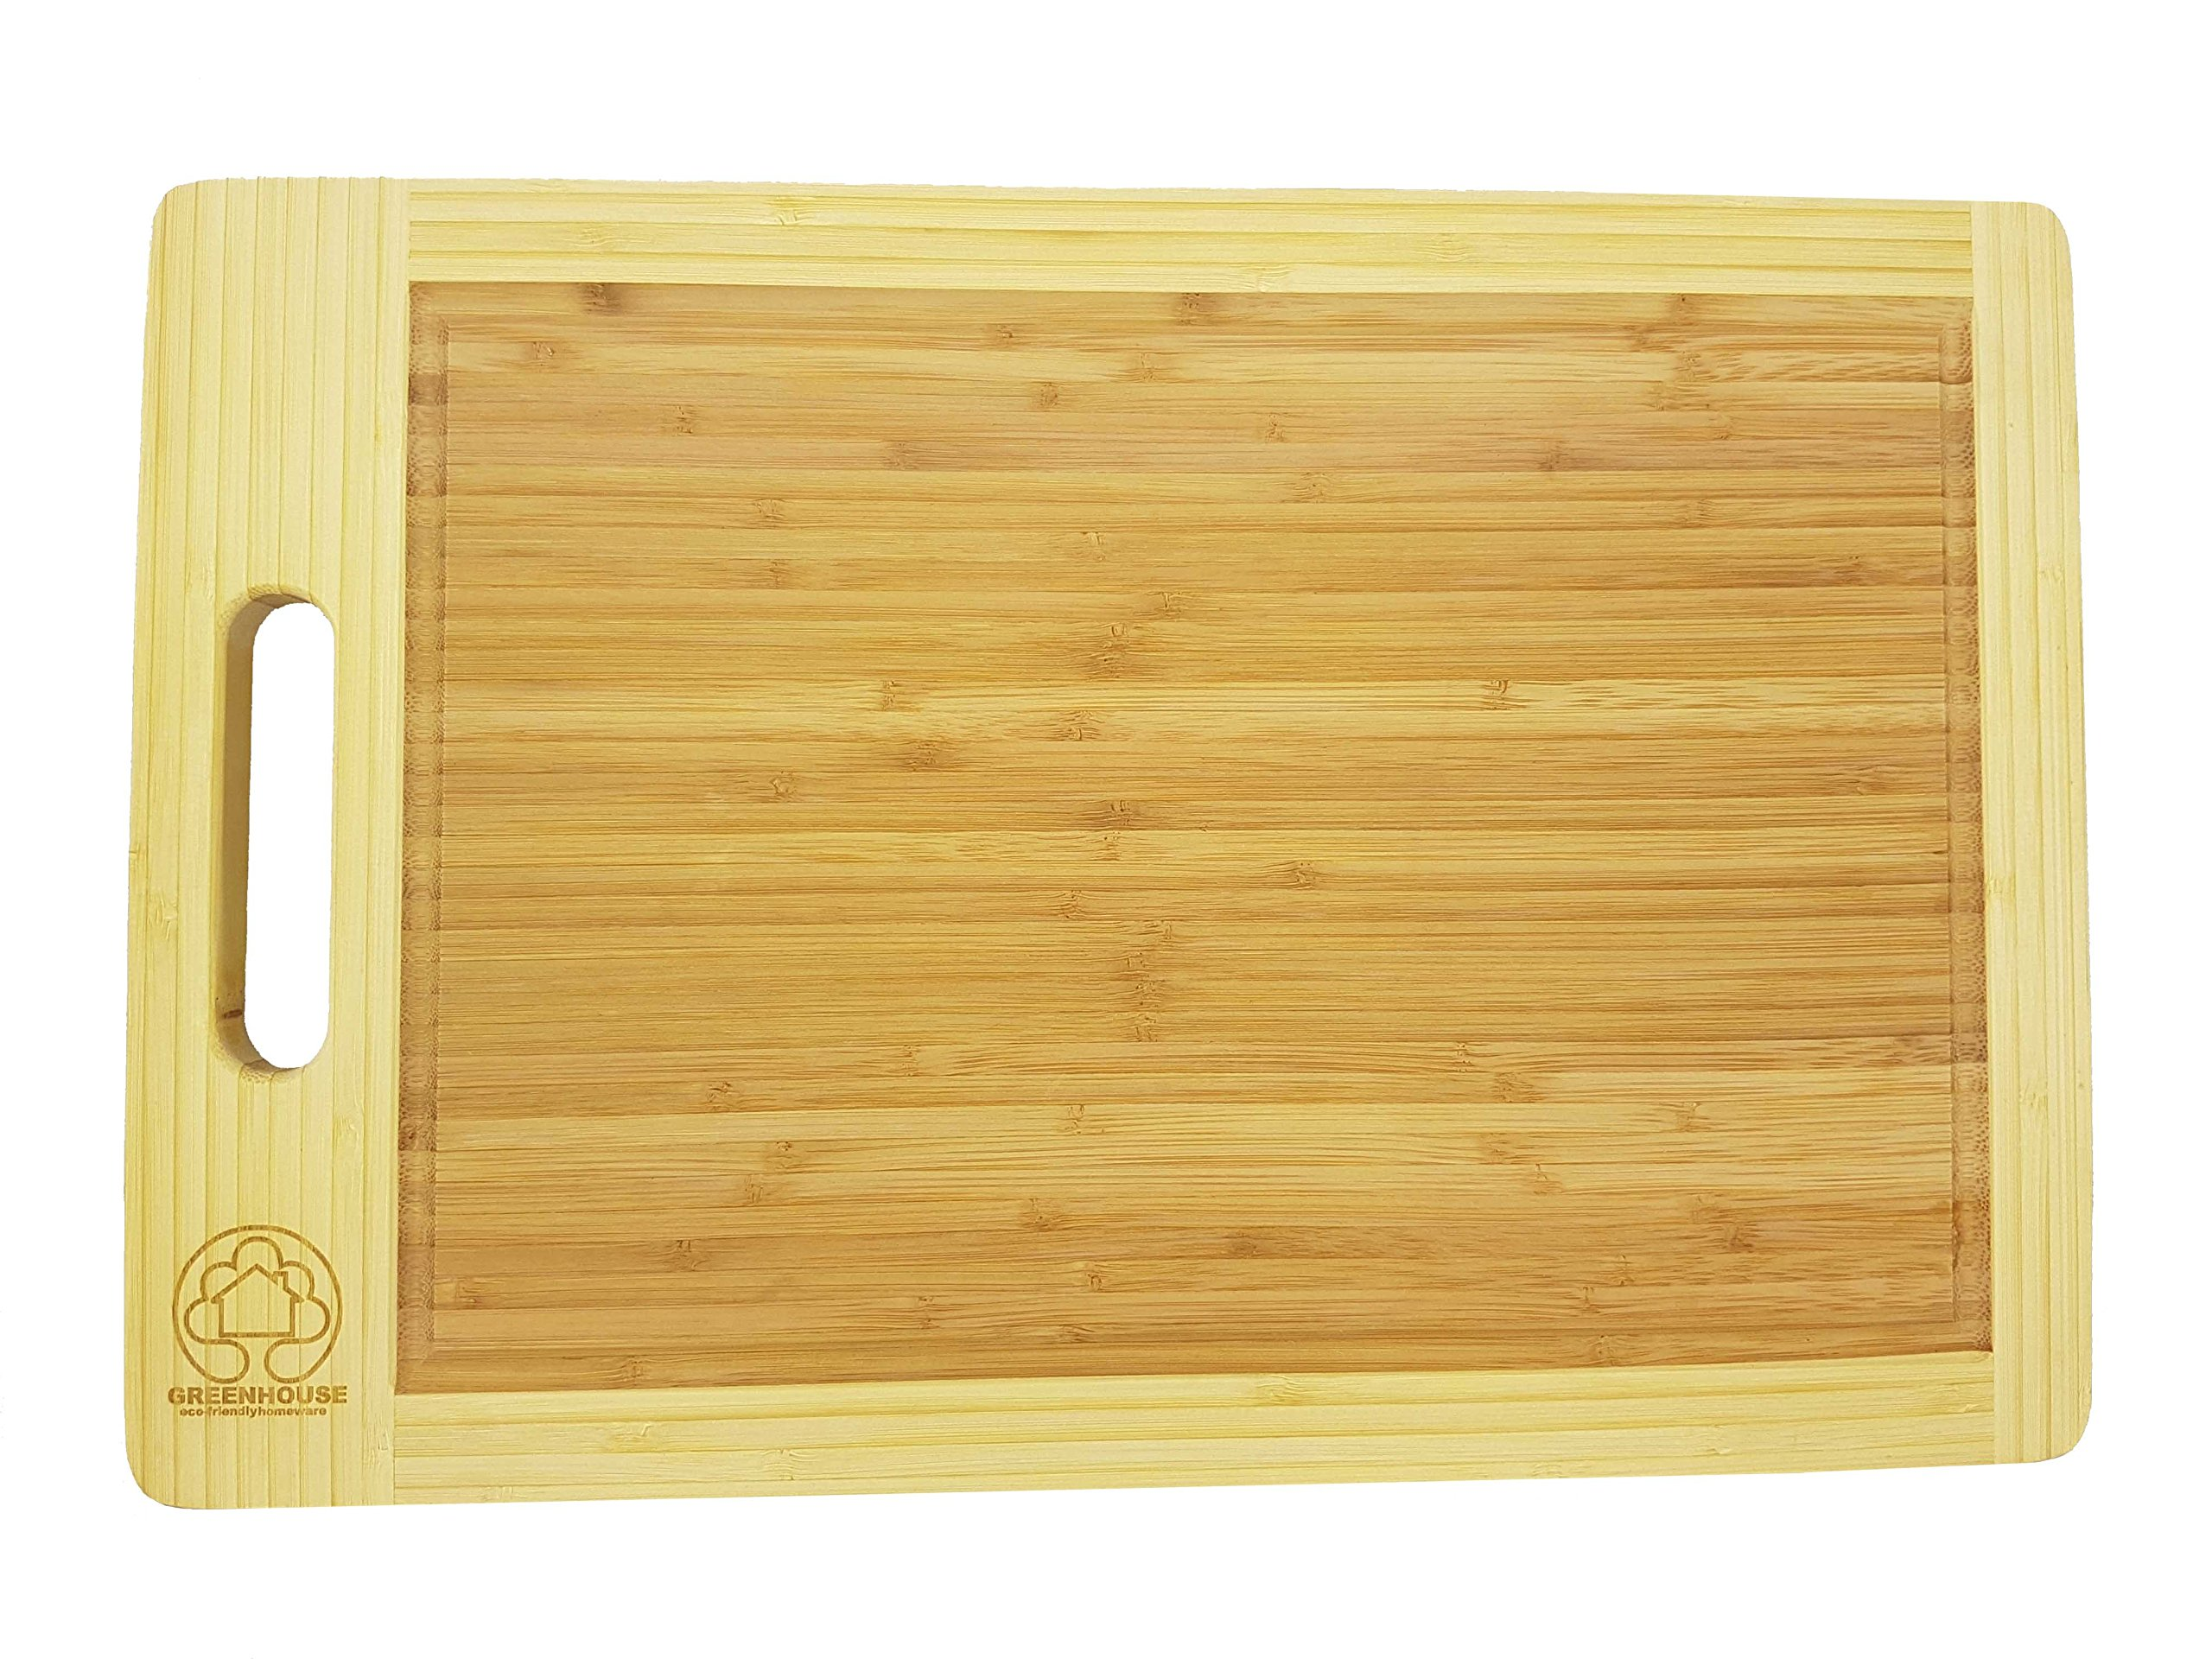 xl cutting board bamboo large end grooves chopping wood kitchen butcher block us ebay. Black Bedroom Furniture Sets. Home Design Ideas